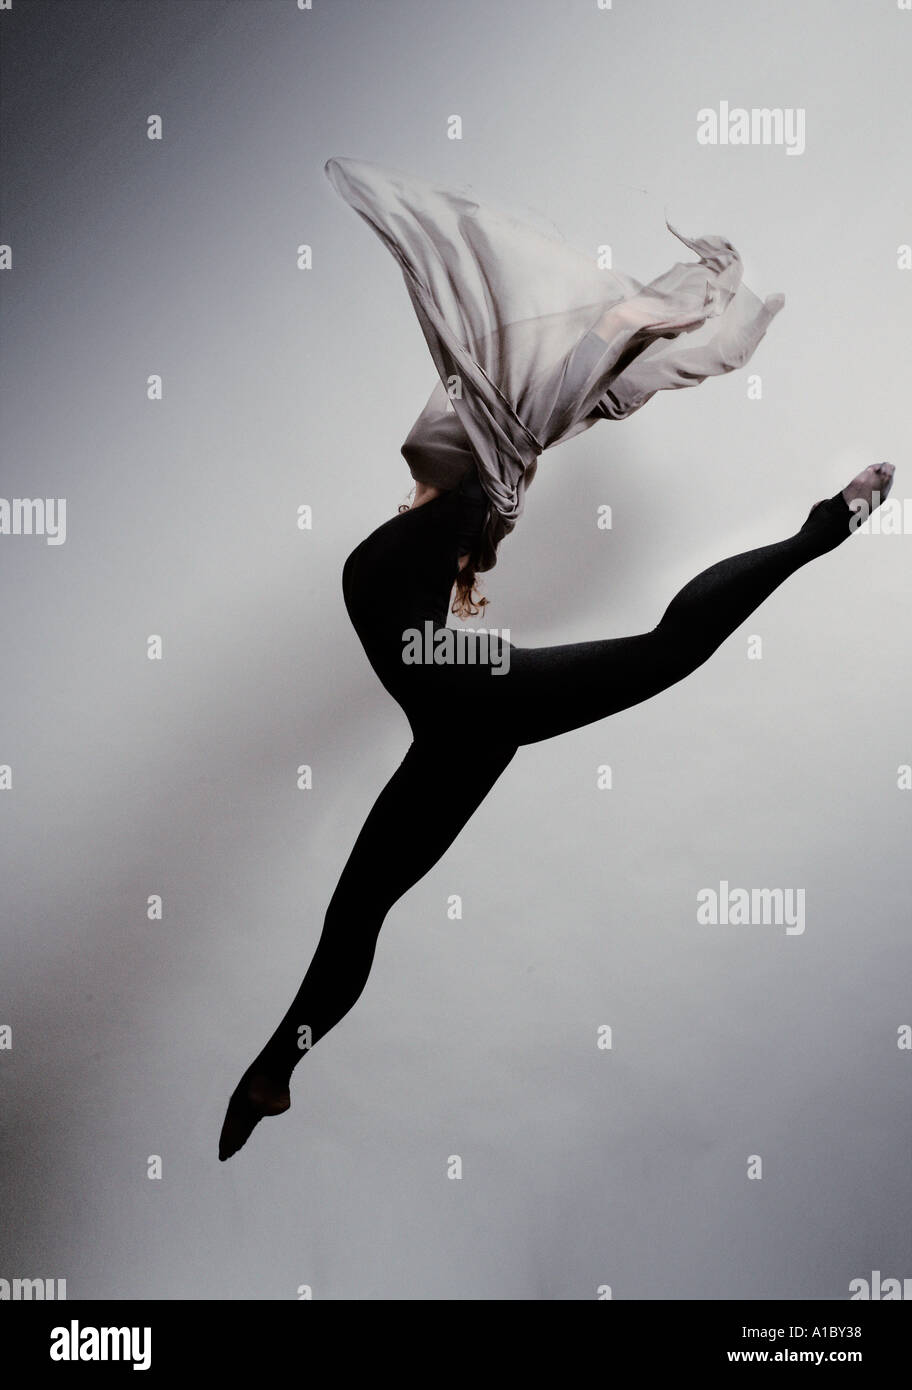 female ballet dancer leaping with a silk scarf - Stock Image